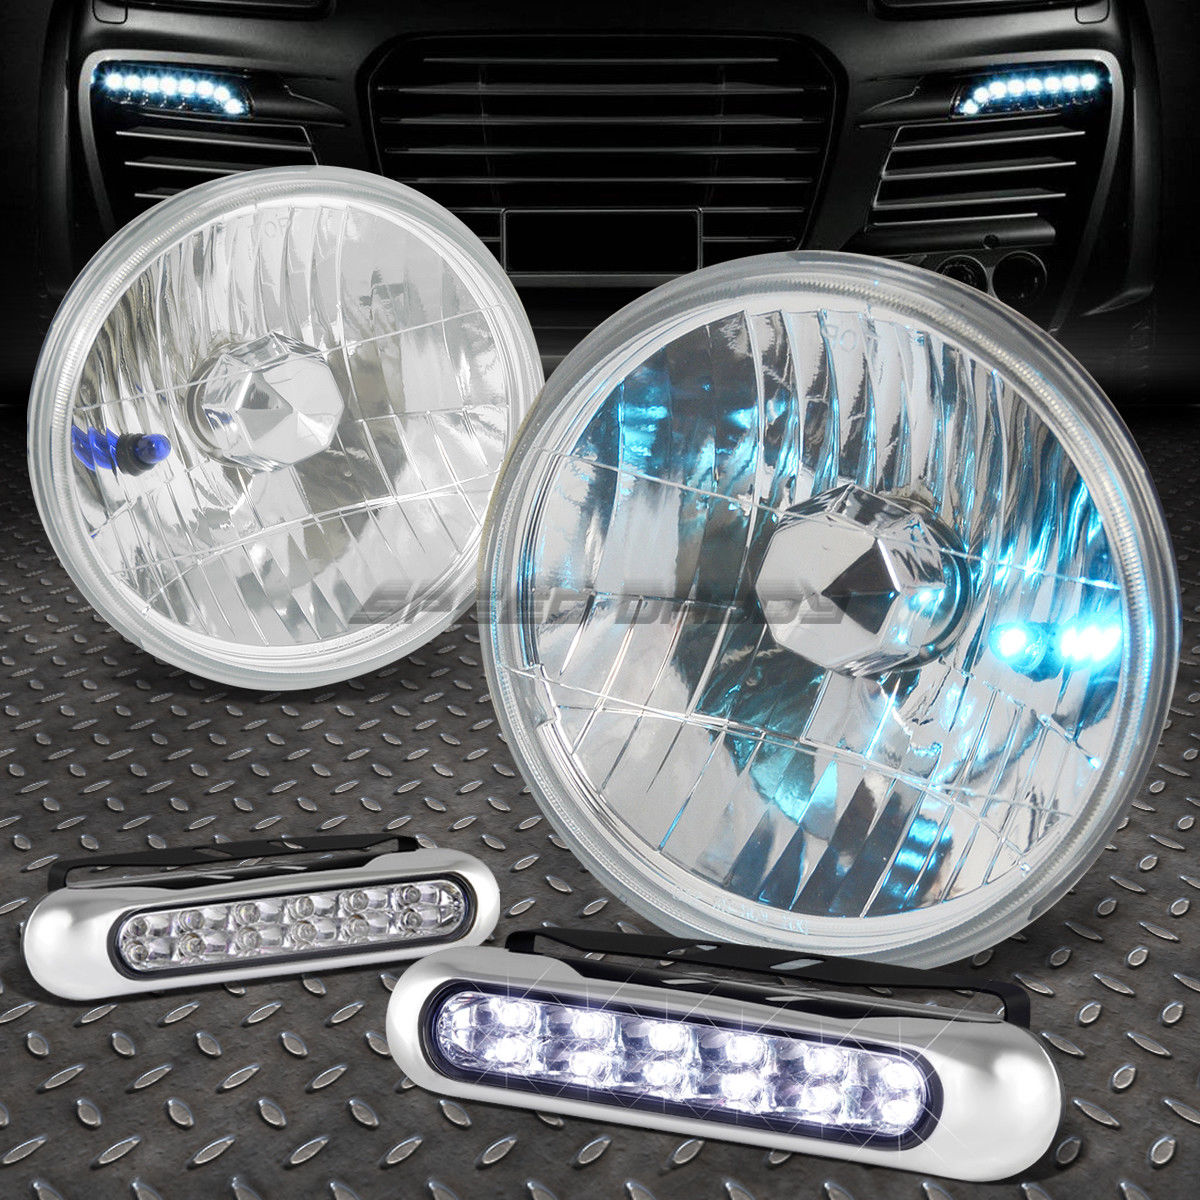 フォグライト 7x7 ROUND CHROME HOUSING HEADLIGHT+12 LED GRILL FOG LIGHT FOR CHEVY SILVERADO 7x7 ROUND CHROME HOUSINGヘッドライト+ CHEVY SILVERADO用12 LEDグリルフォグライト